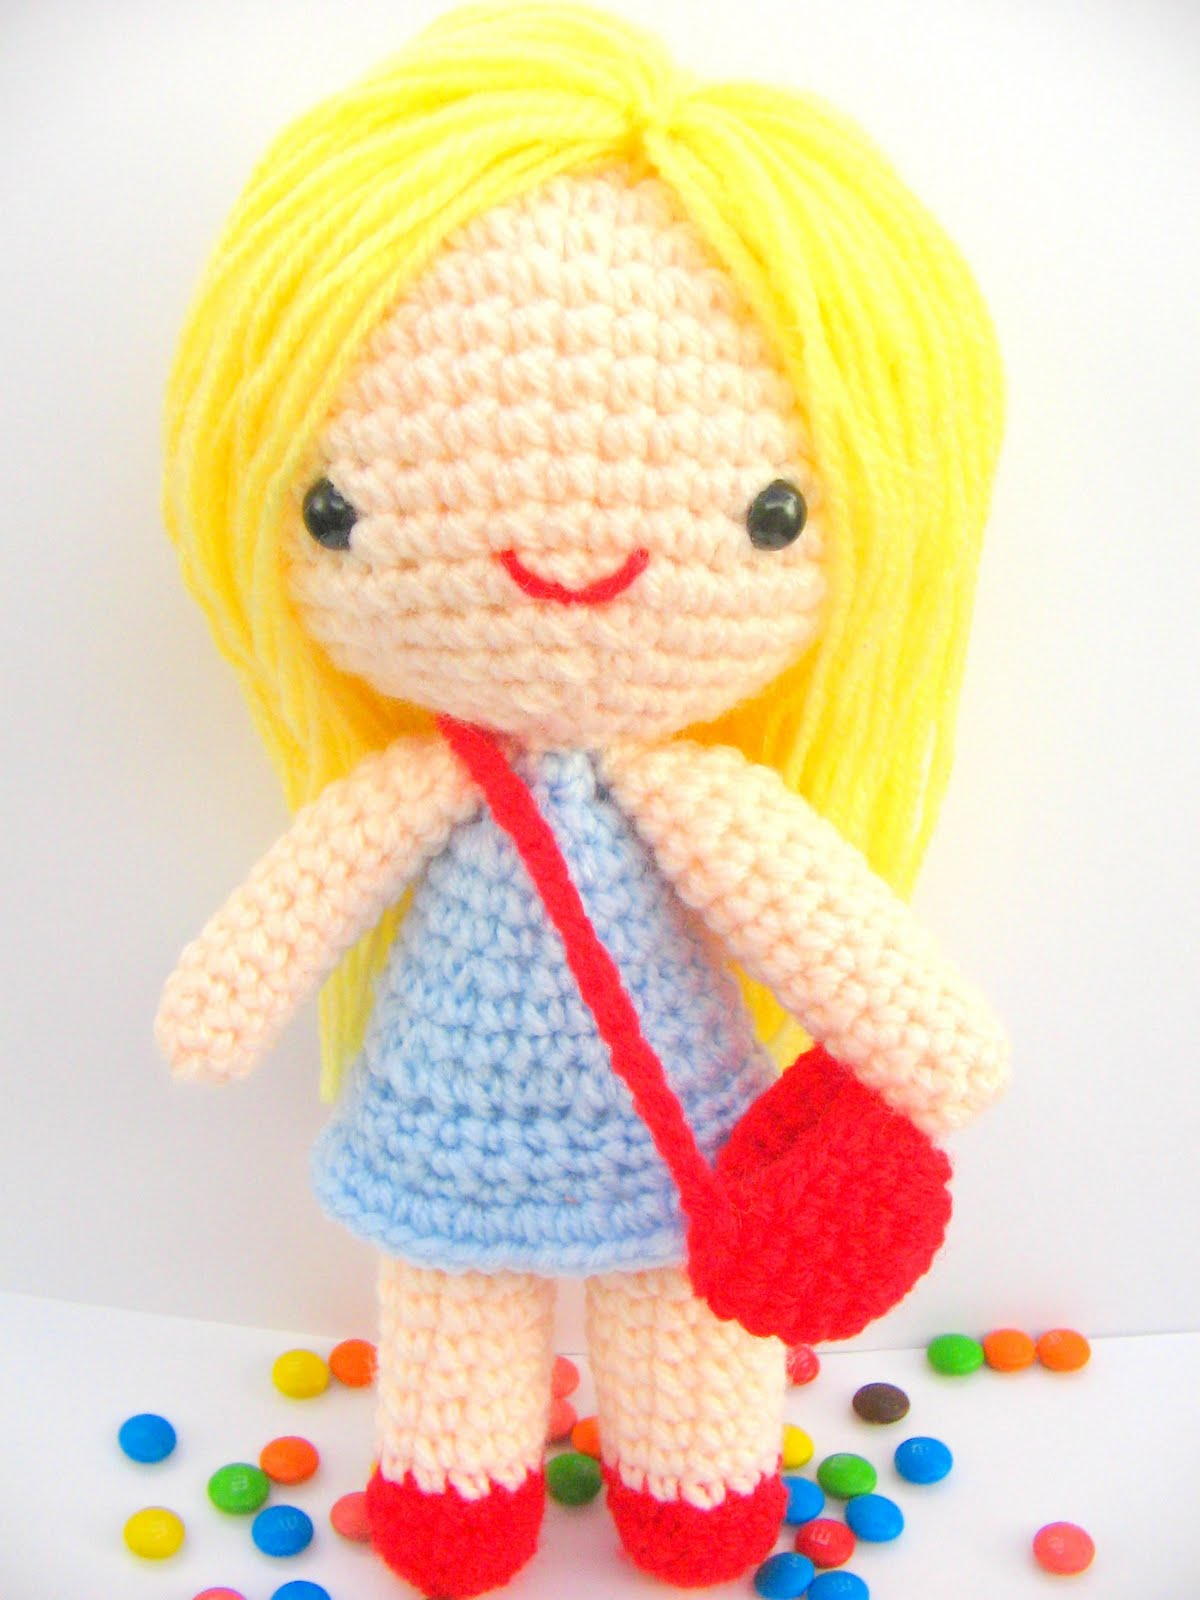 Easy Amigurumi Cute : 2000 Free Amigurumi Patterns: Free amigurumi pattern ...